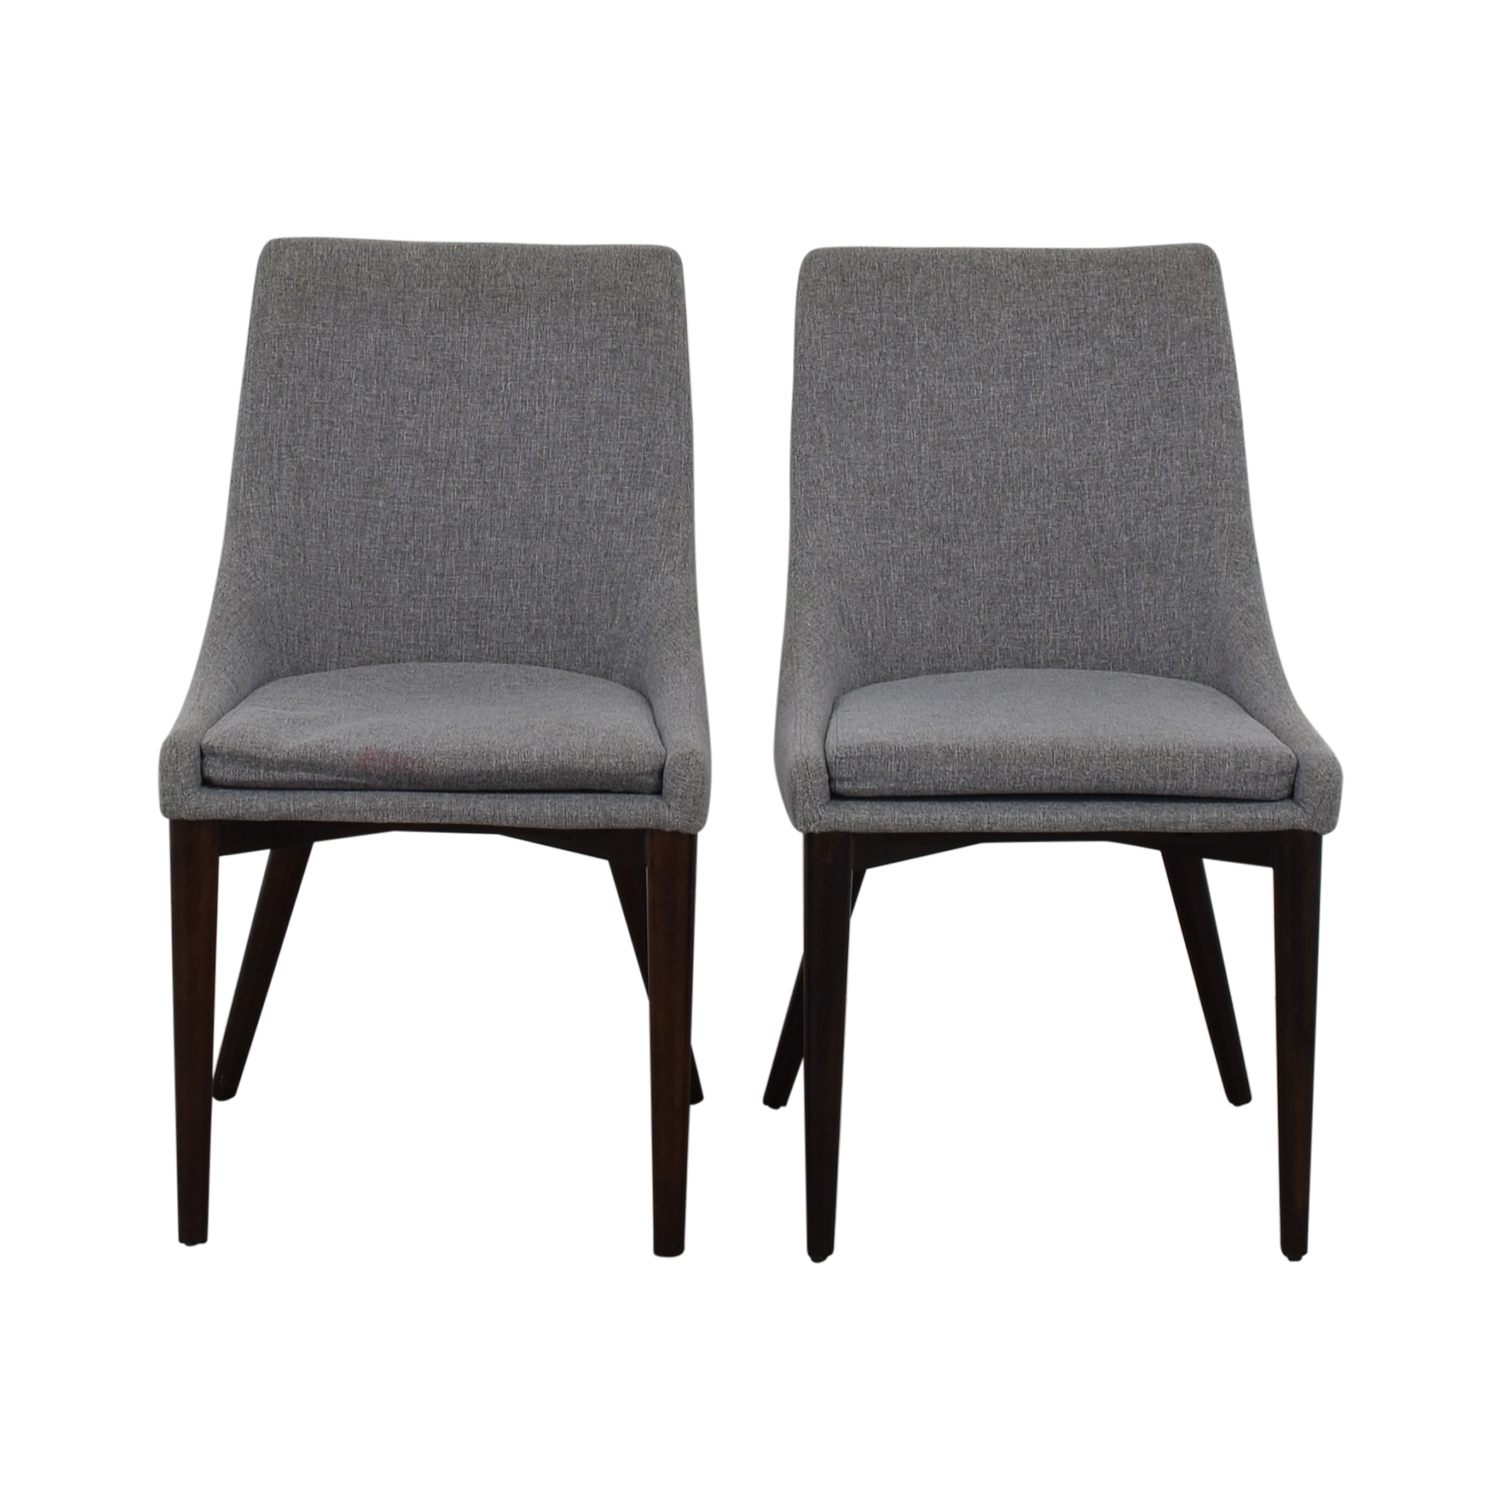 buy iNSPIRE Q Modern Sasha Grey Upholstered Tapered Leg Dining Chairs iNSPIRE Q Modern Dining Chairs